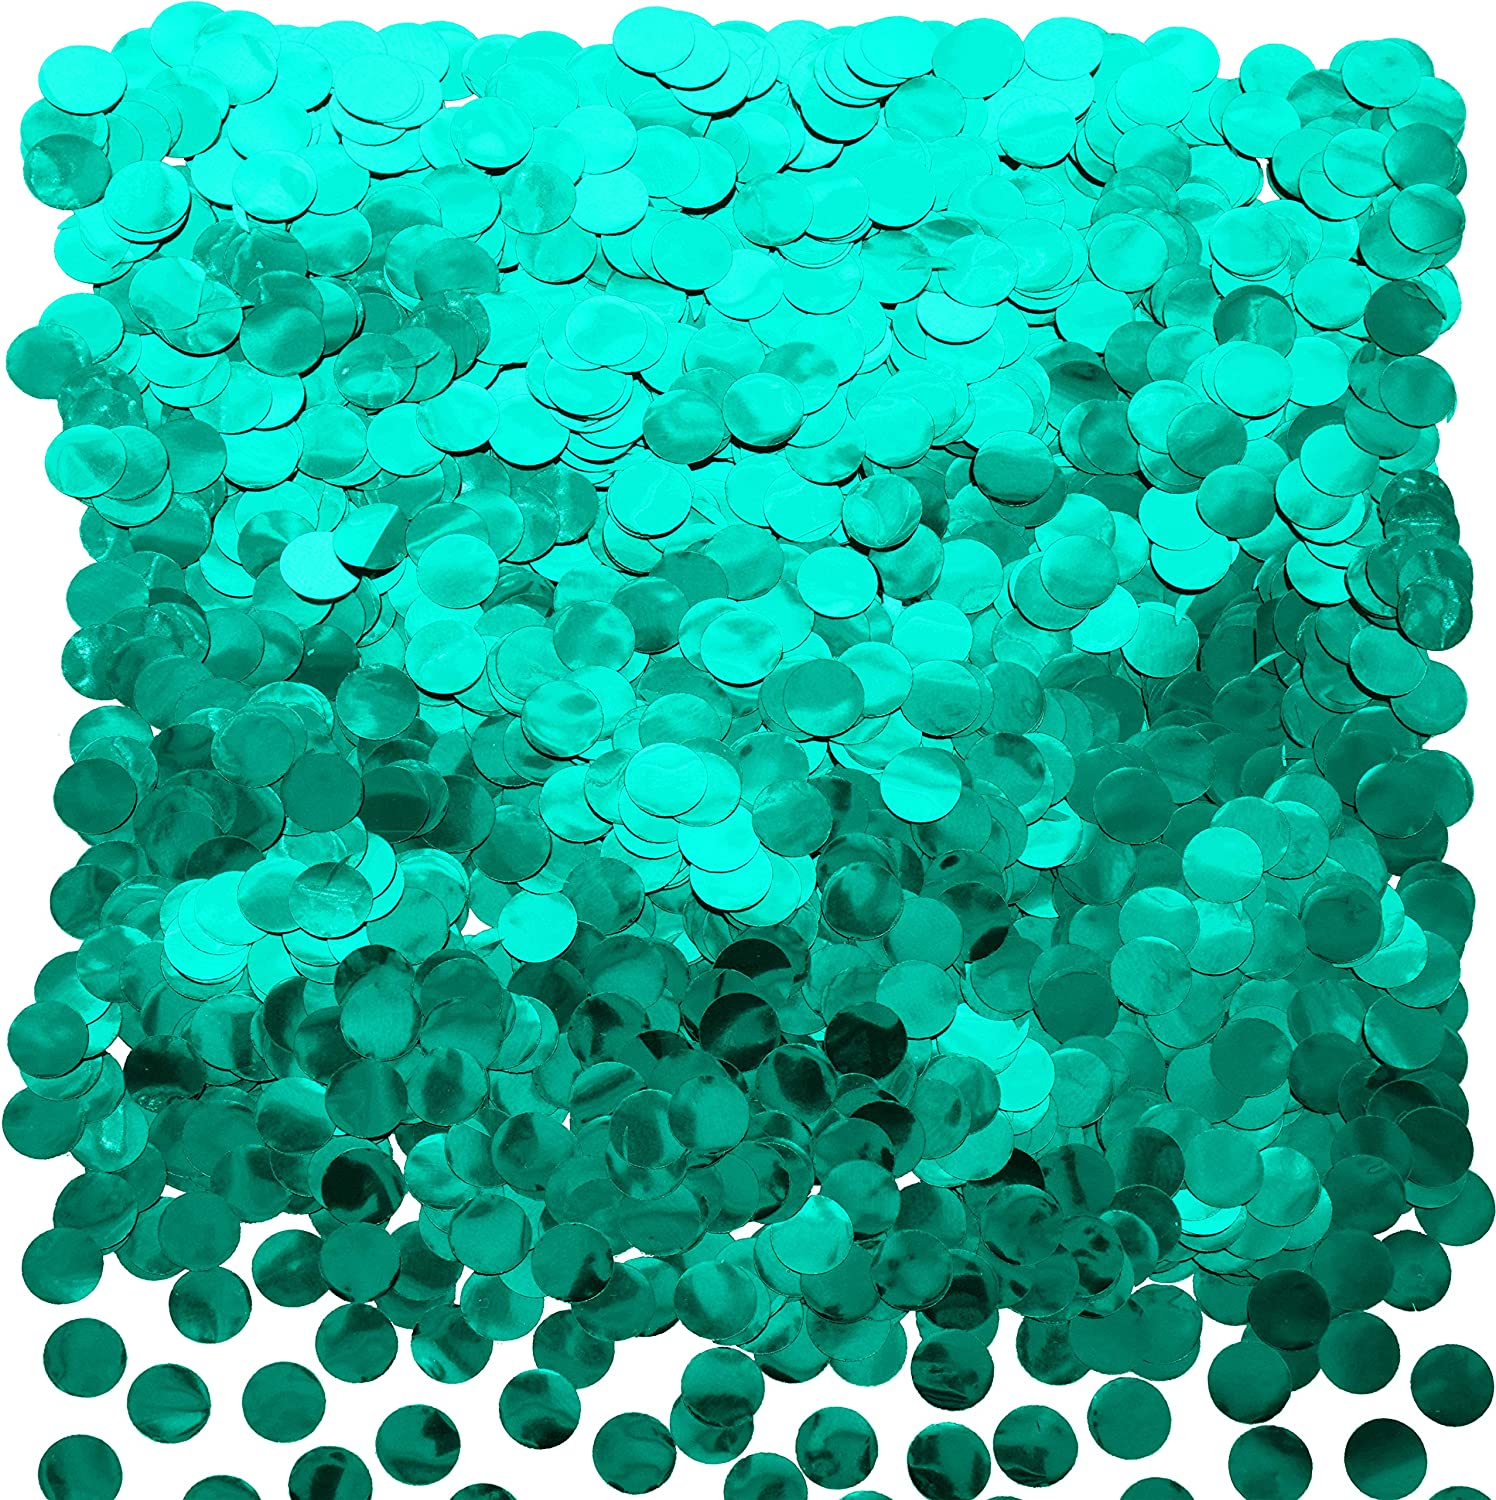 Teal Blue Foil Metallic Round Table Confetti Decor Circle Dots Mylar Table Scatter Confetti Under the Sea Birthday Baby Shower Summer Pool Beach Wedding Bachelorette Party Confetti Decorations, 60g